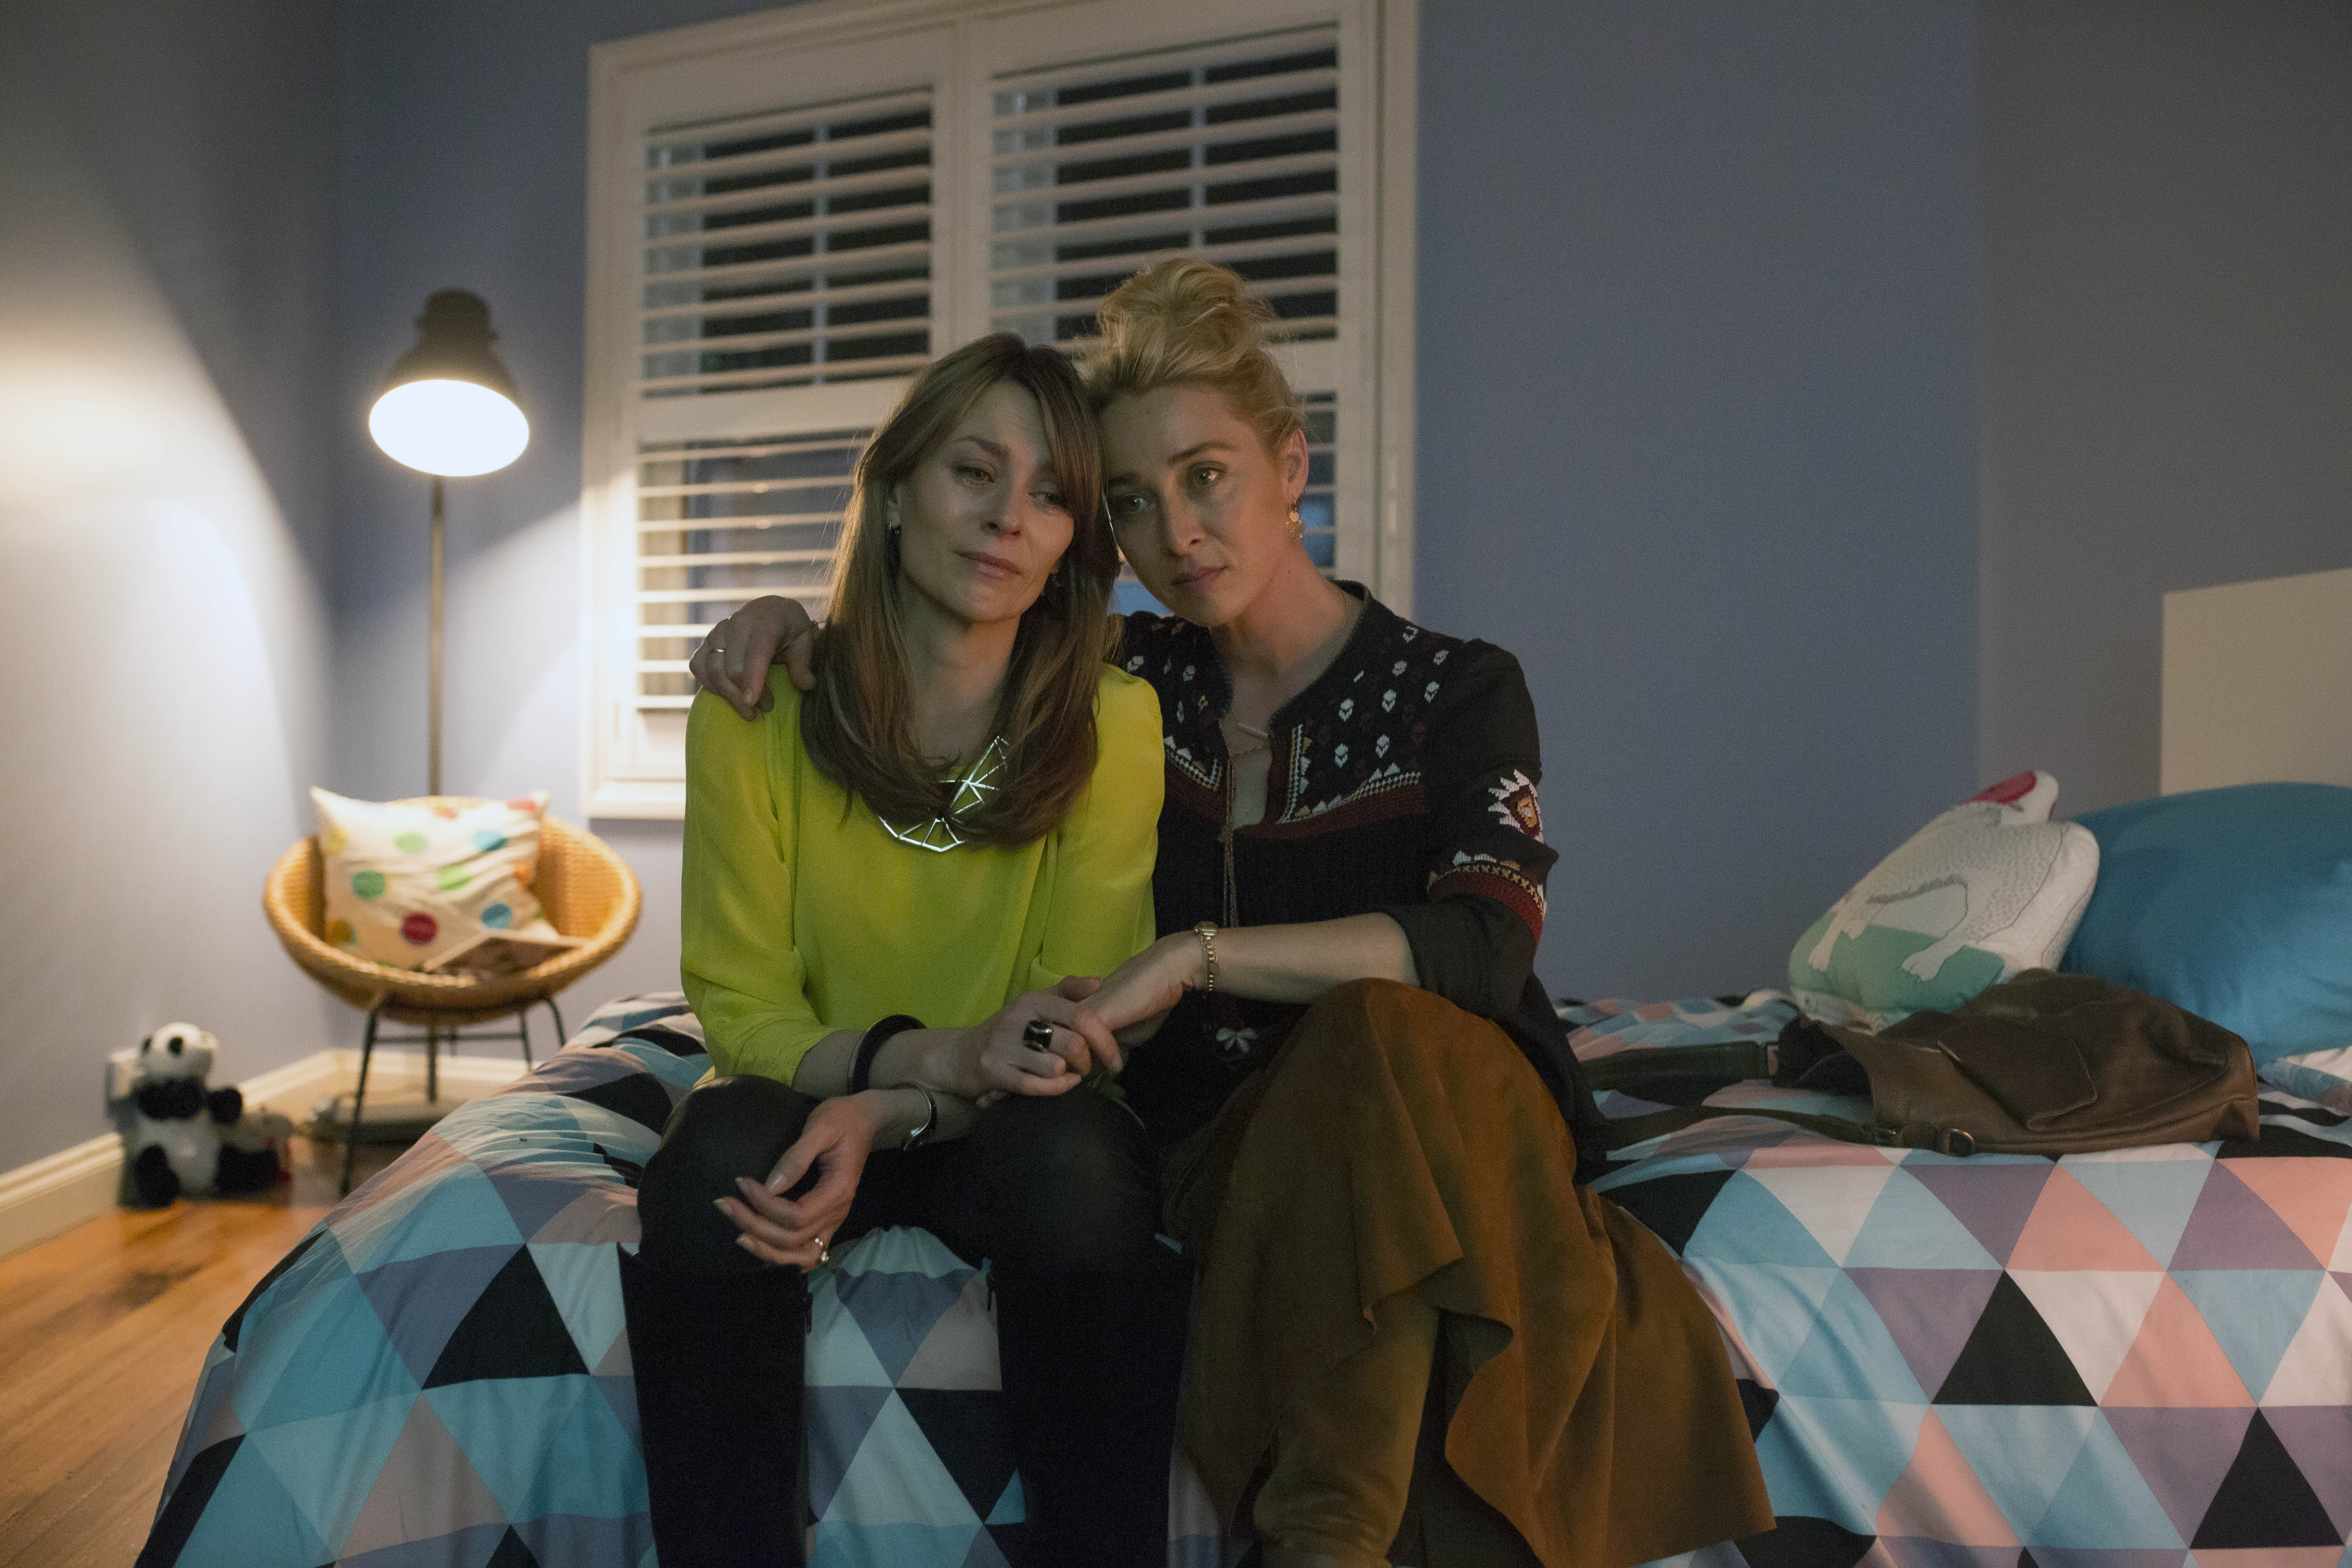 Offspring recap season 6 episode 9 yahoo7 for Living together in empty room ep 10